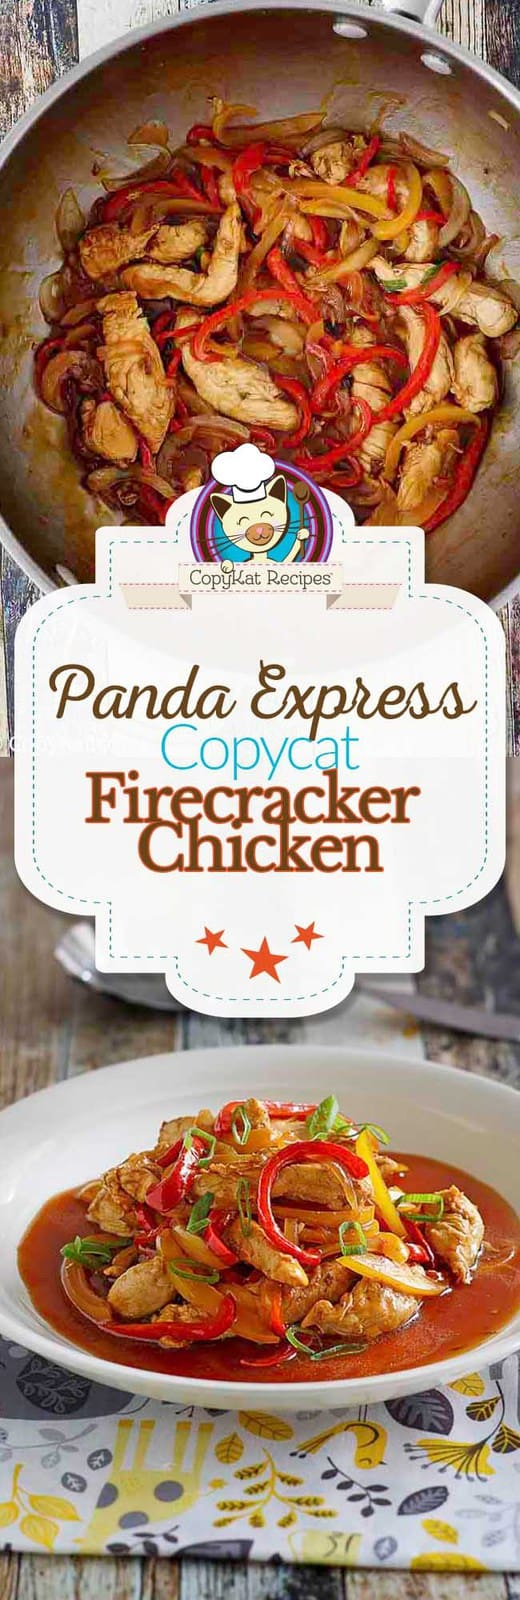 Make Panda Express Firecracker Chicken at home with this copycat recipe. It is the perfect chicken recipe for dinner!